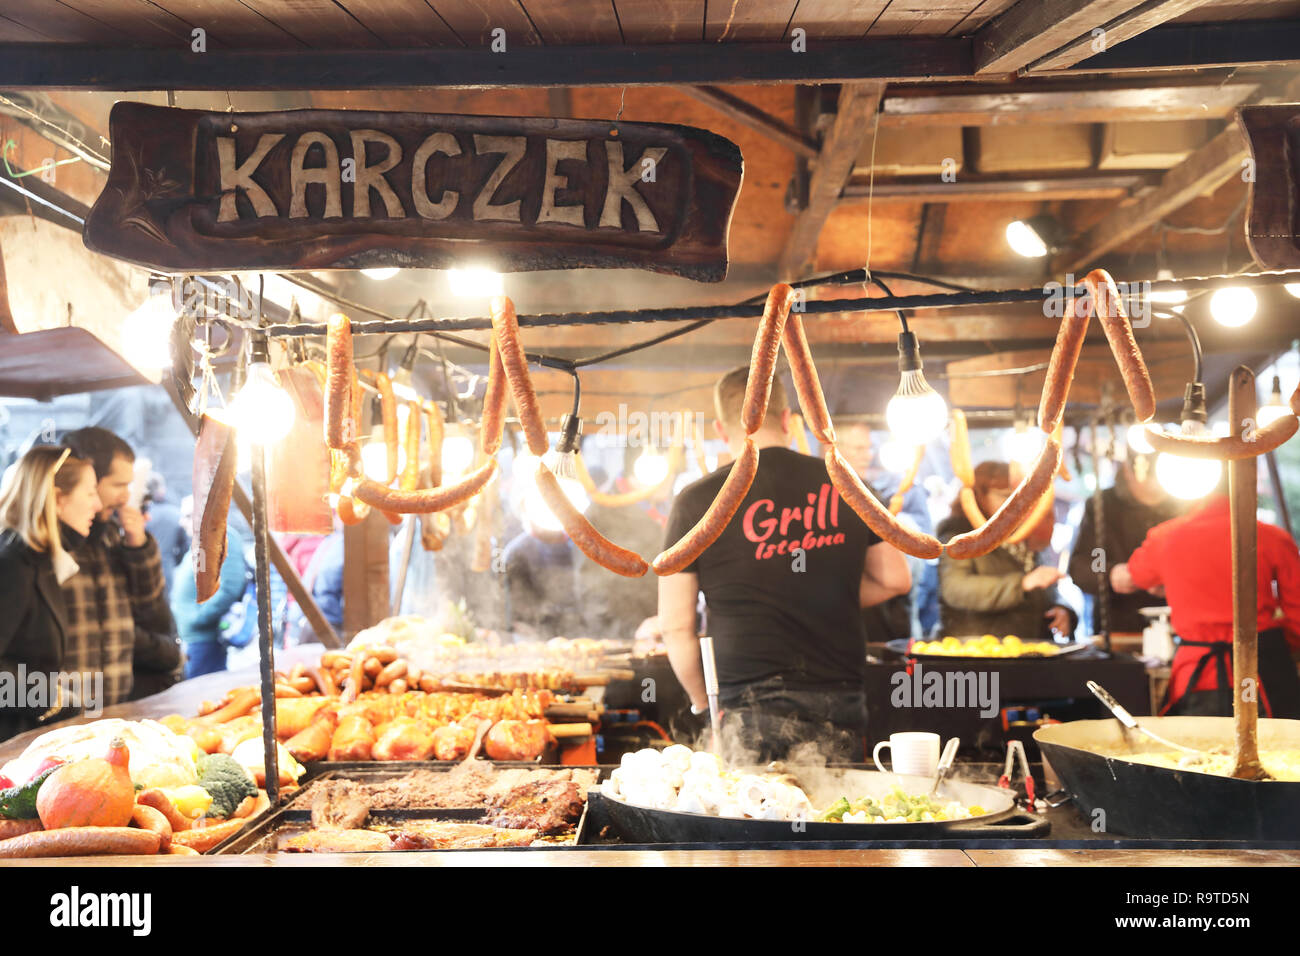 Food stalls on the Christmas market in the Main Market Square, in the Old Town in Krakow, Poland - Stock Image